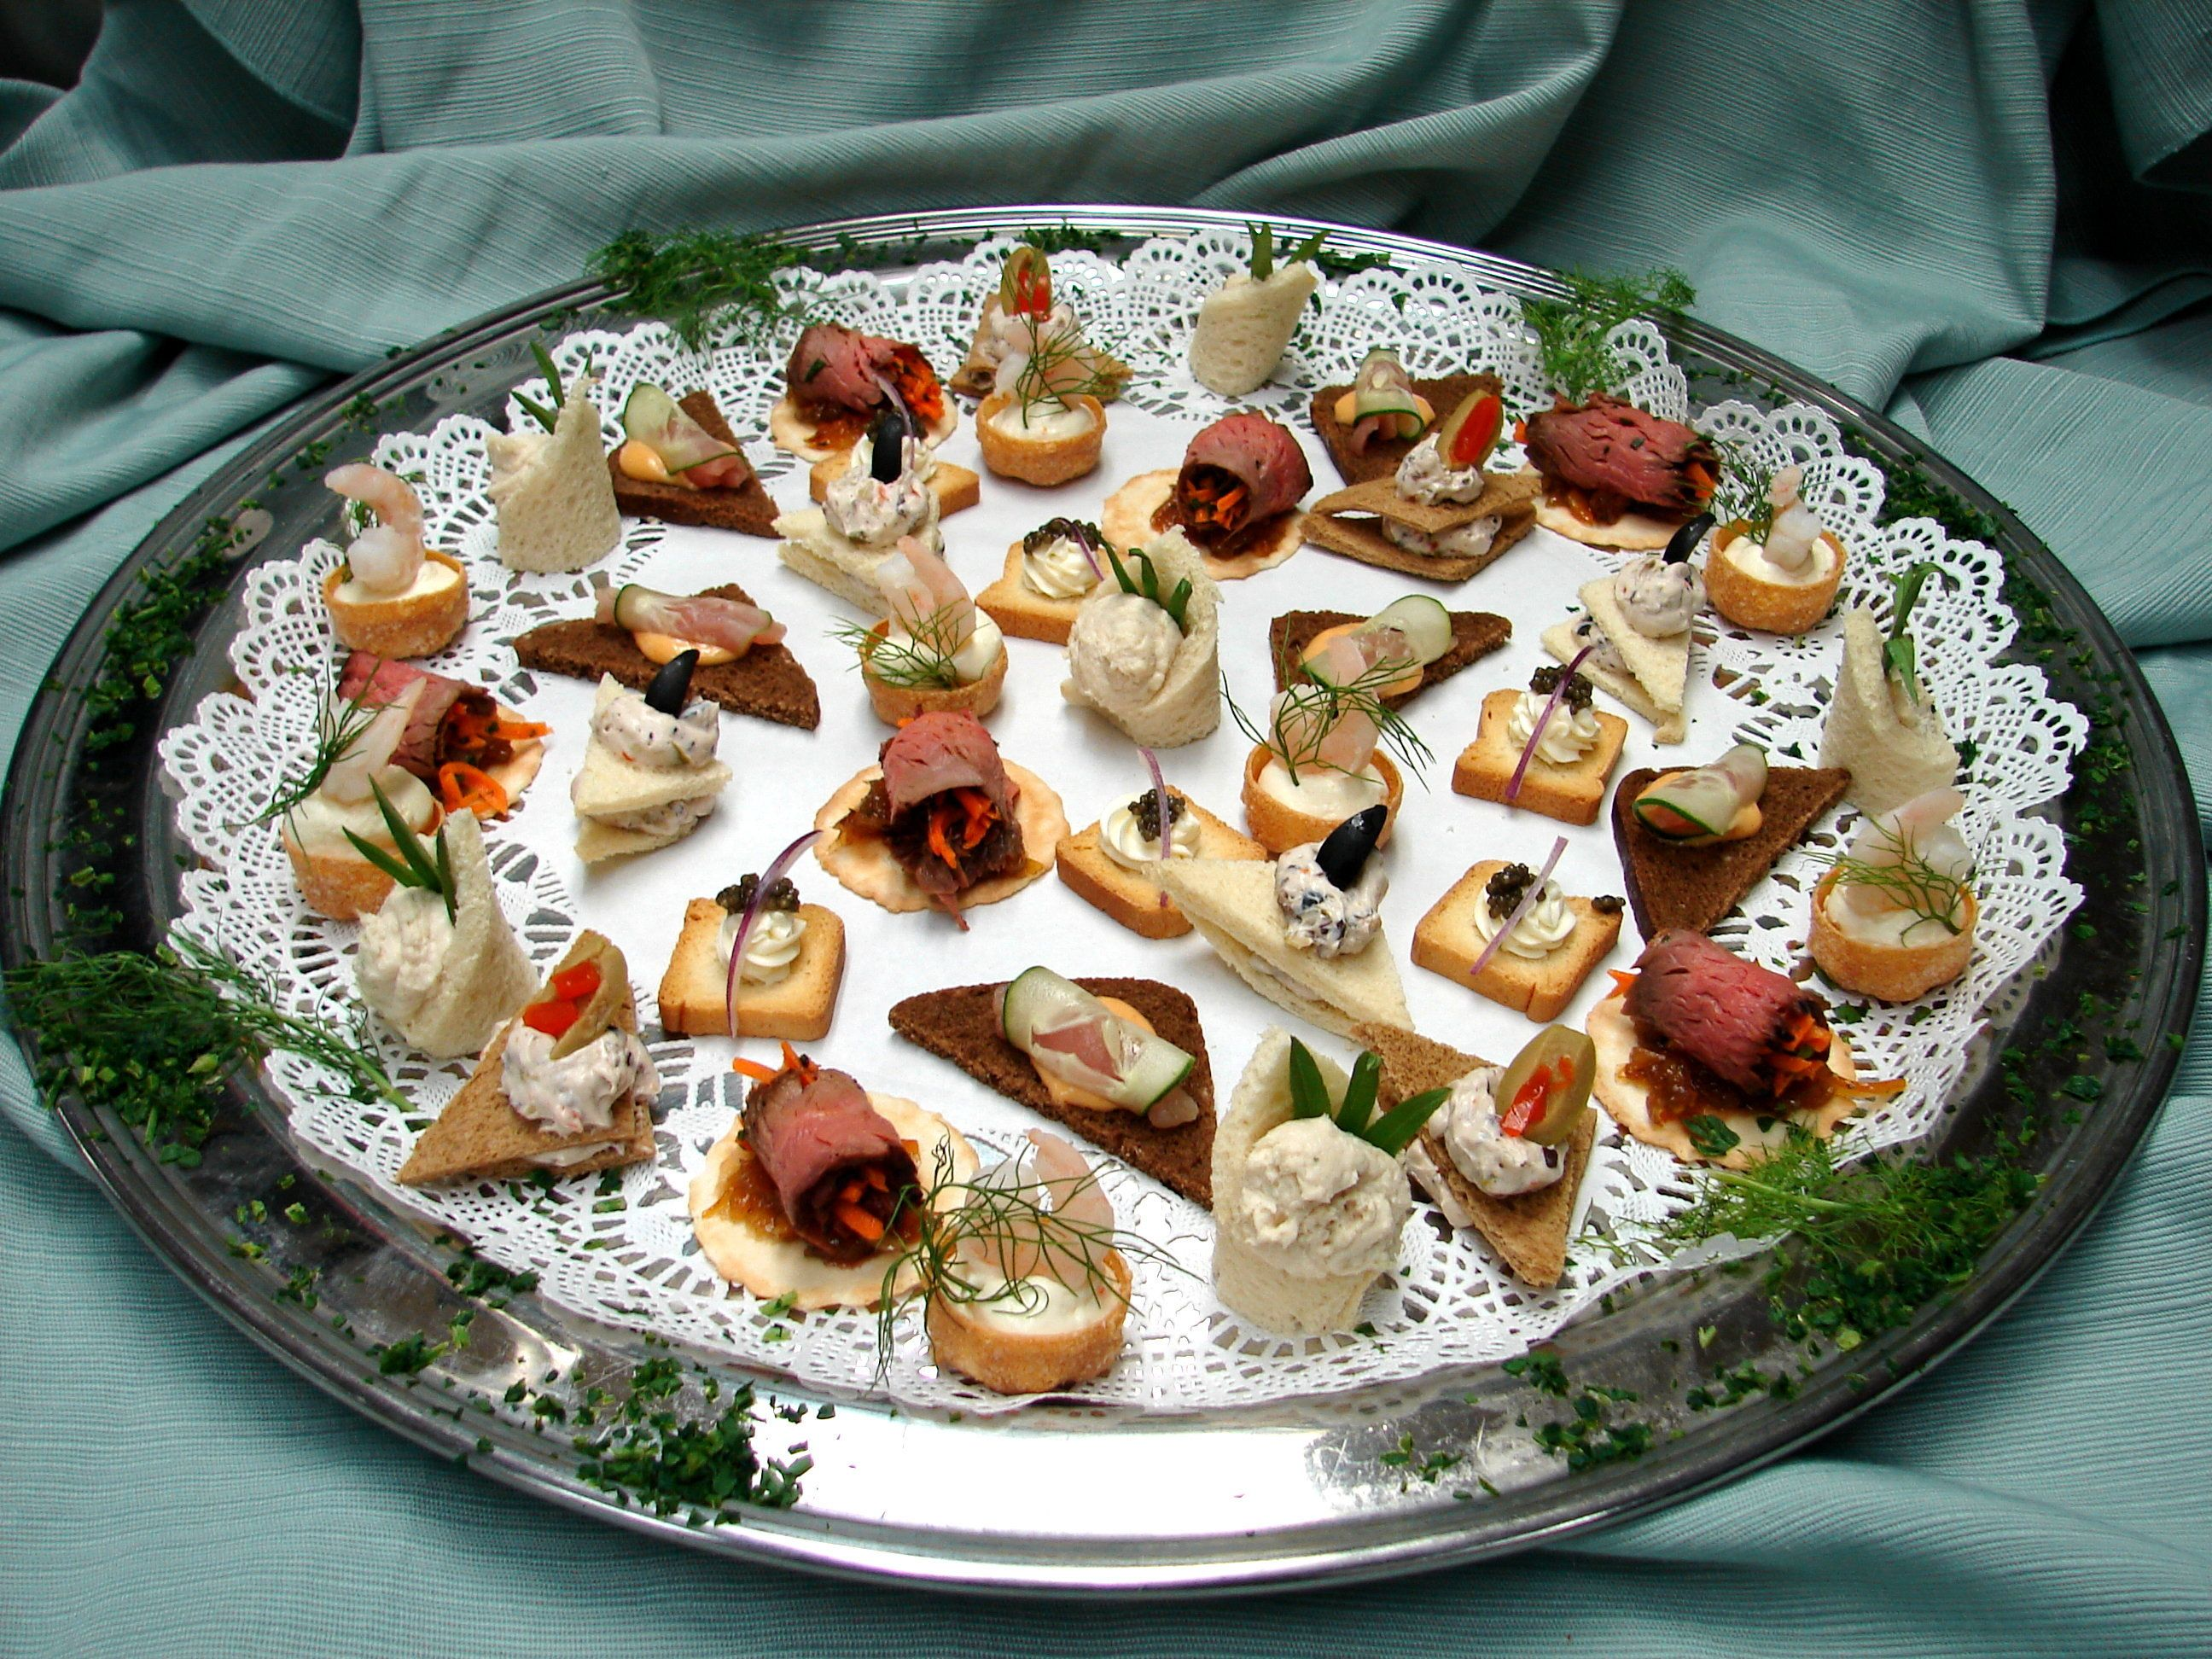 Monterey gourmet hot cold hors d 39 oeuvre lunch for for Gourmet canape ideas